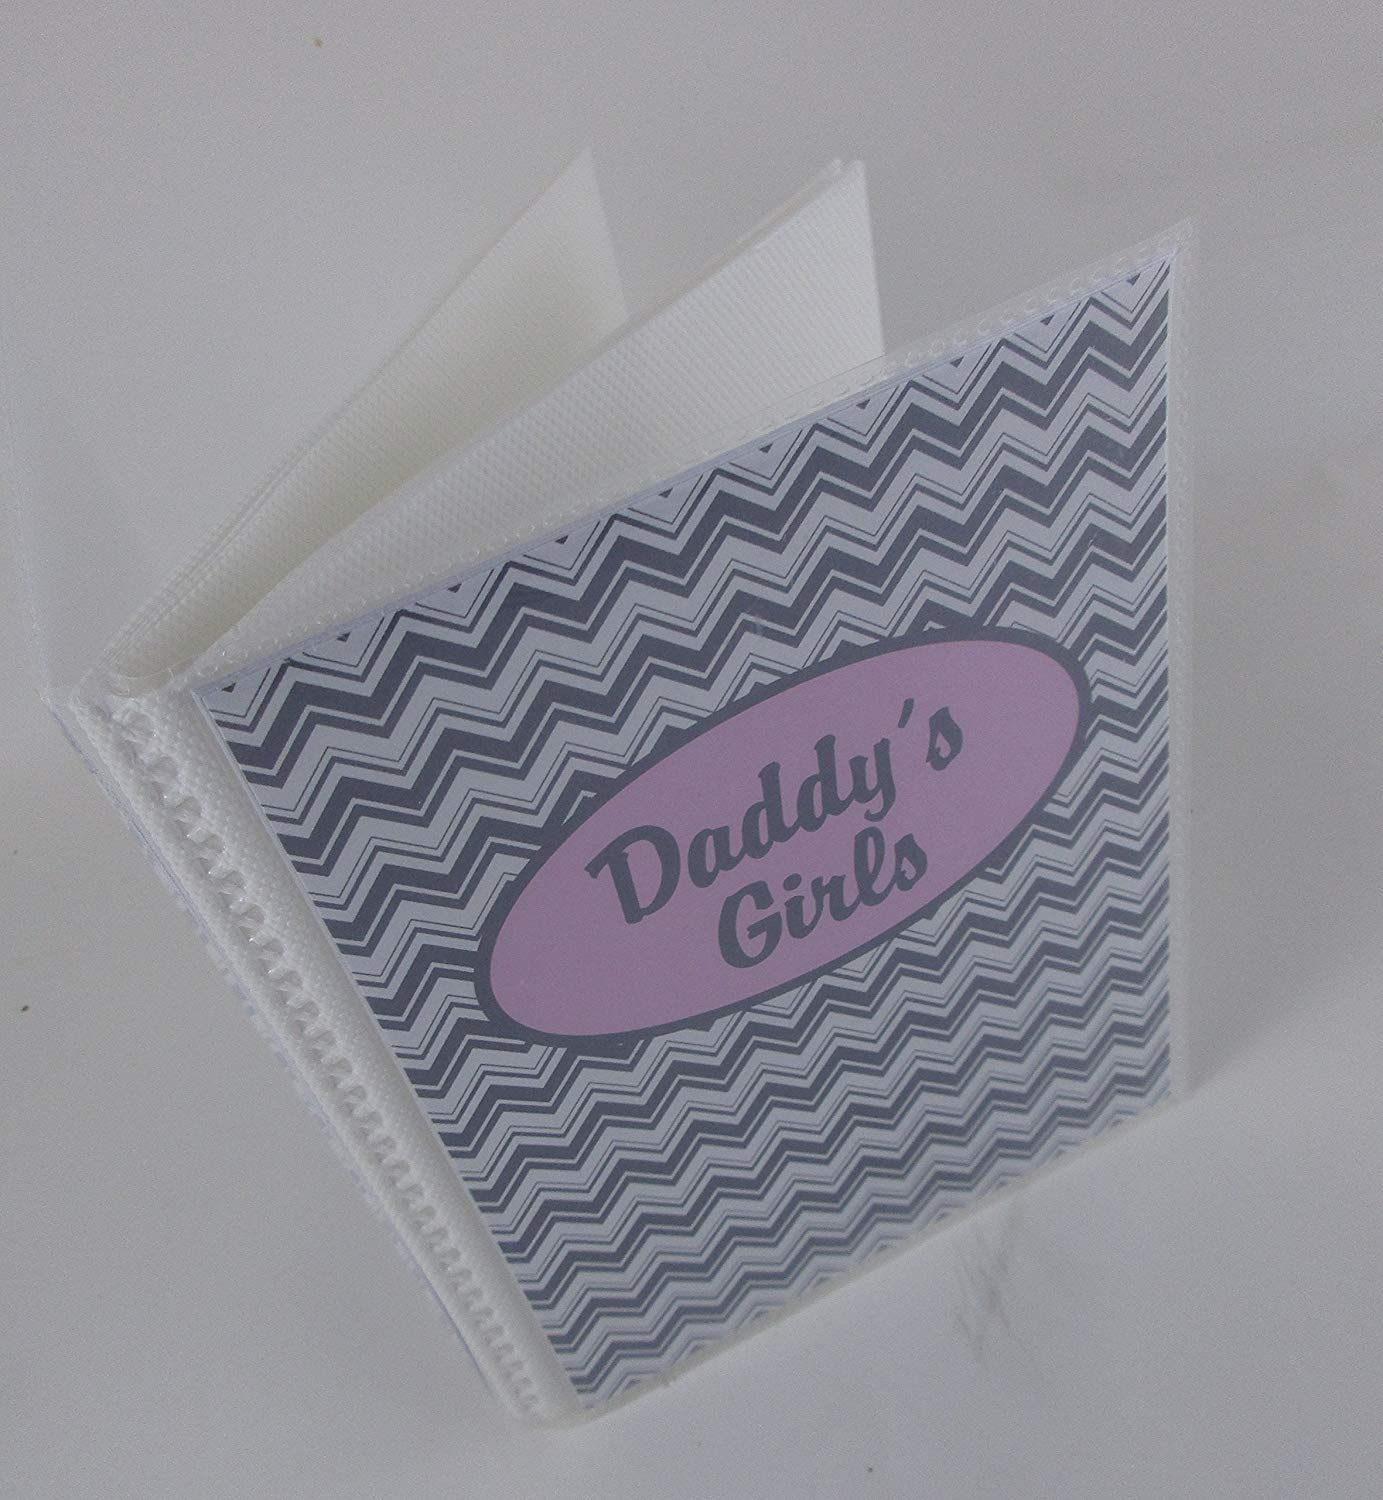 c7043e54e3fa5 Get Quotations · Personalized Baby Photo Album . Gray and Pink Chevron.  040P . 4x6 or 5x7 pictures